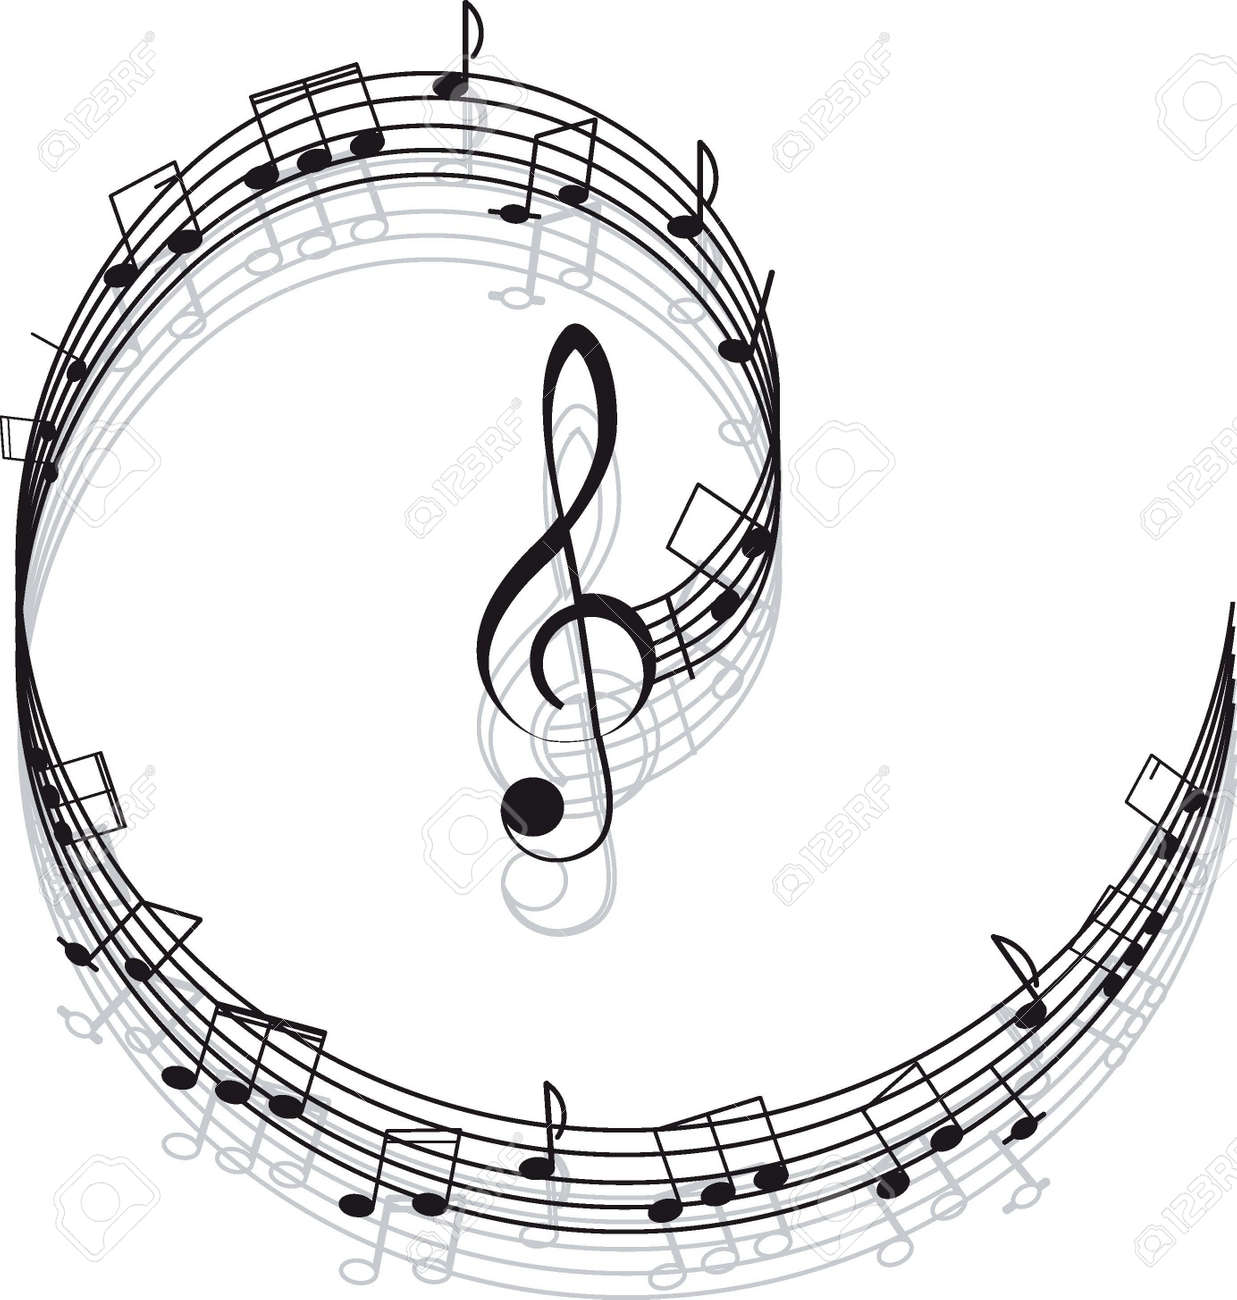 Musical notes staff background on white vector by tassel78 image - Bass Clef Music Treble Clef And Notes For Your Design On A White Background